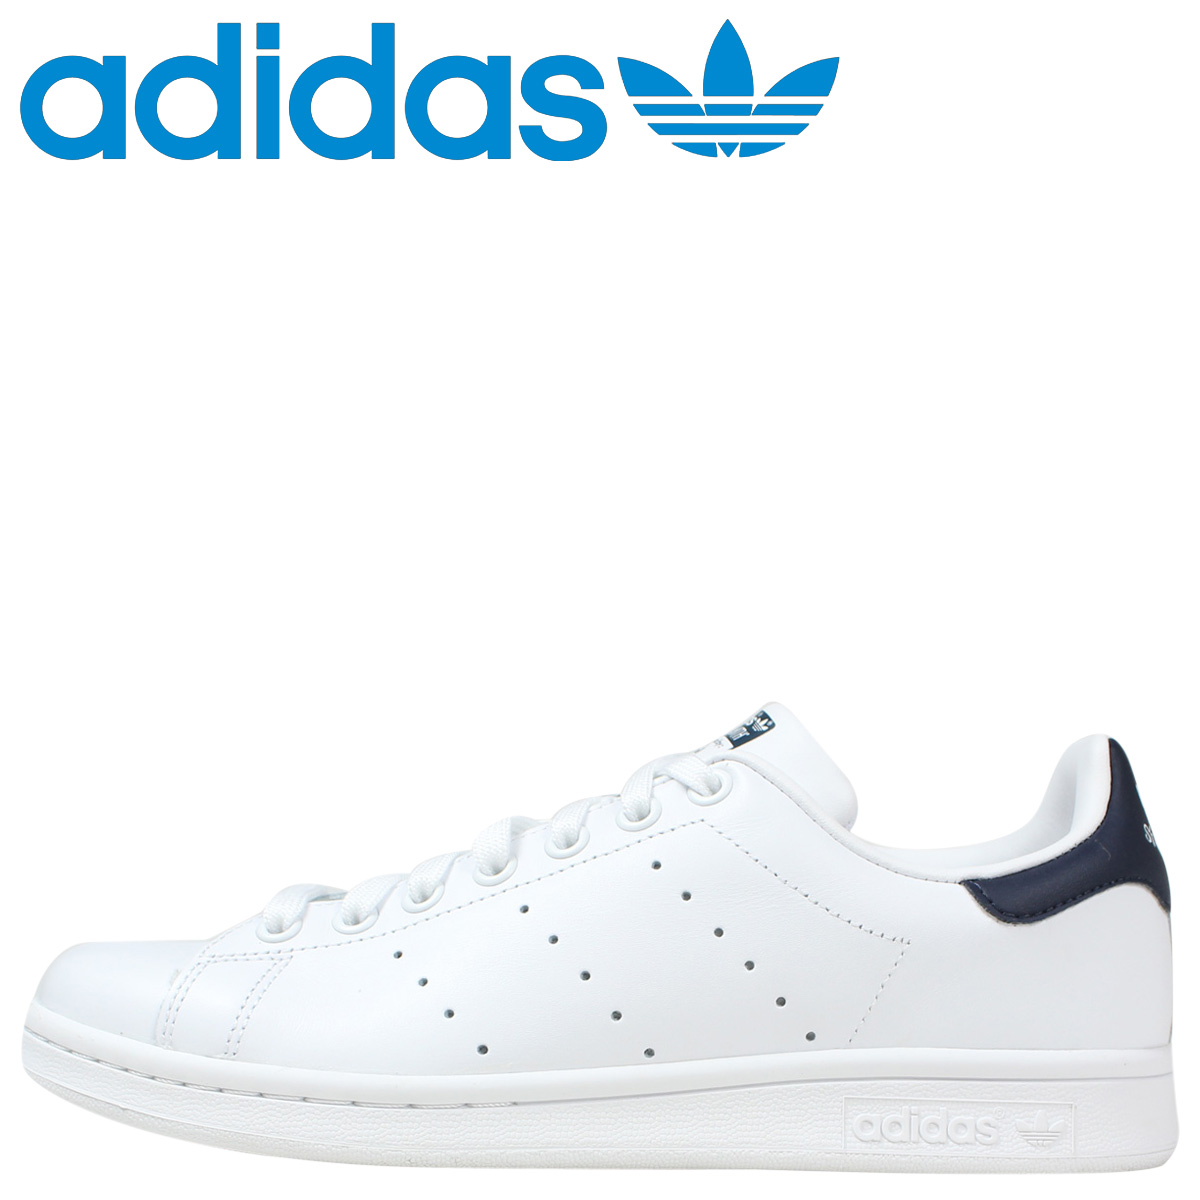 2e688a5d14ed9 Adidas originals adidas Originals STAN SMITH sneakers Stan Smith leather  men s women s M20325 White x Navy unisex  9   30 Add in stock   regular